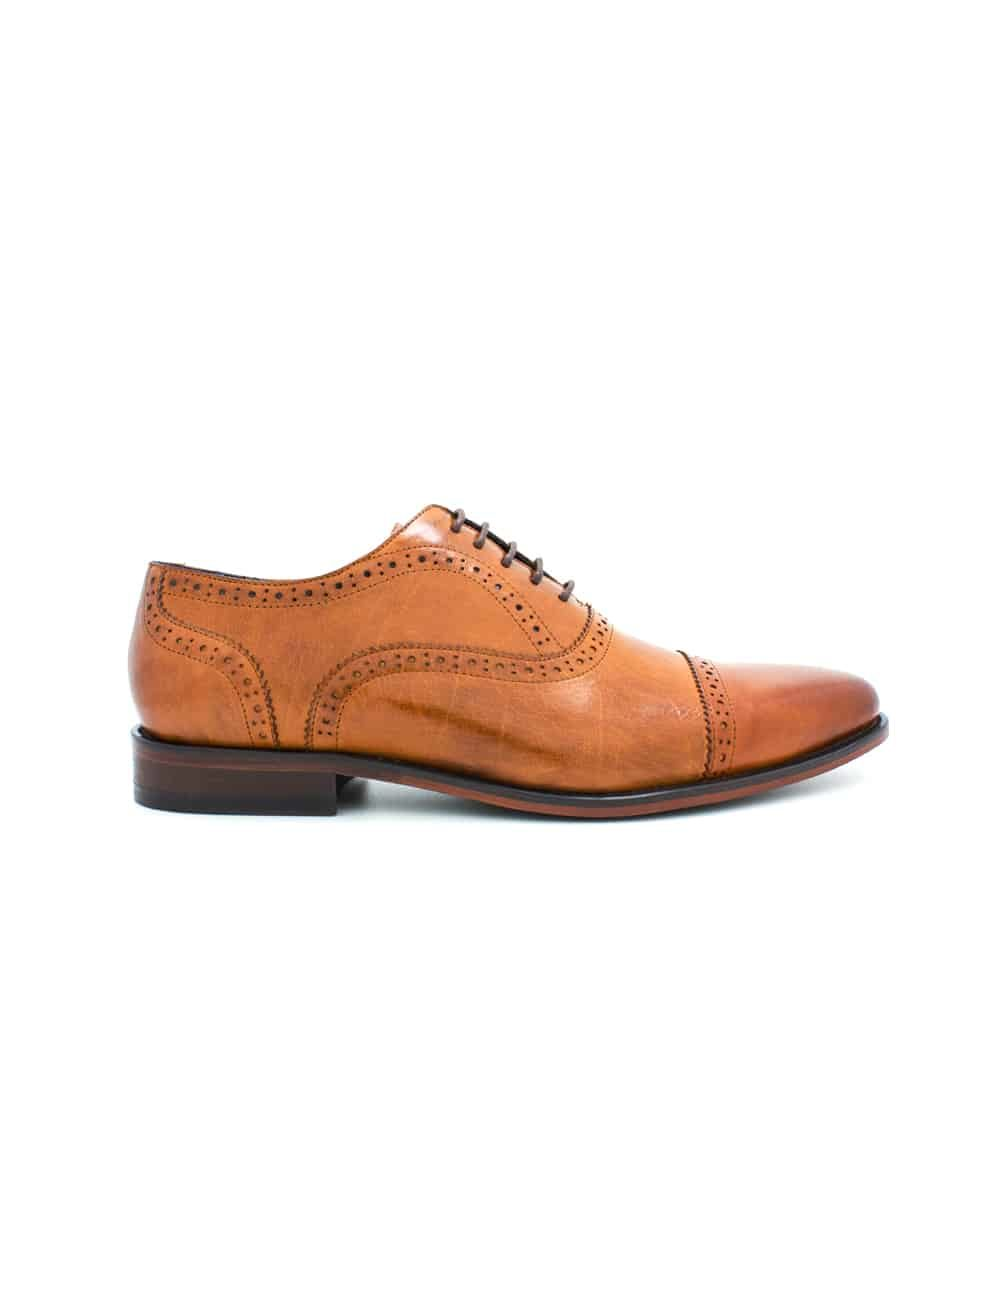 Tan Leather Oxford Quarter Brogue F19A19.3